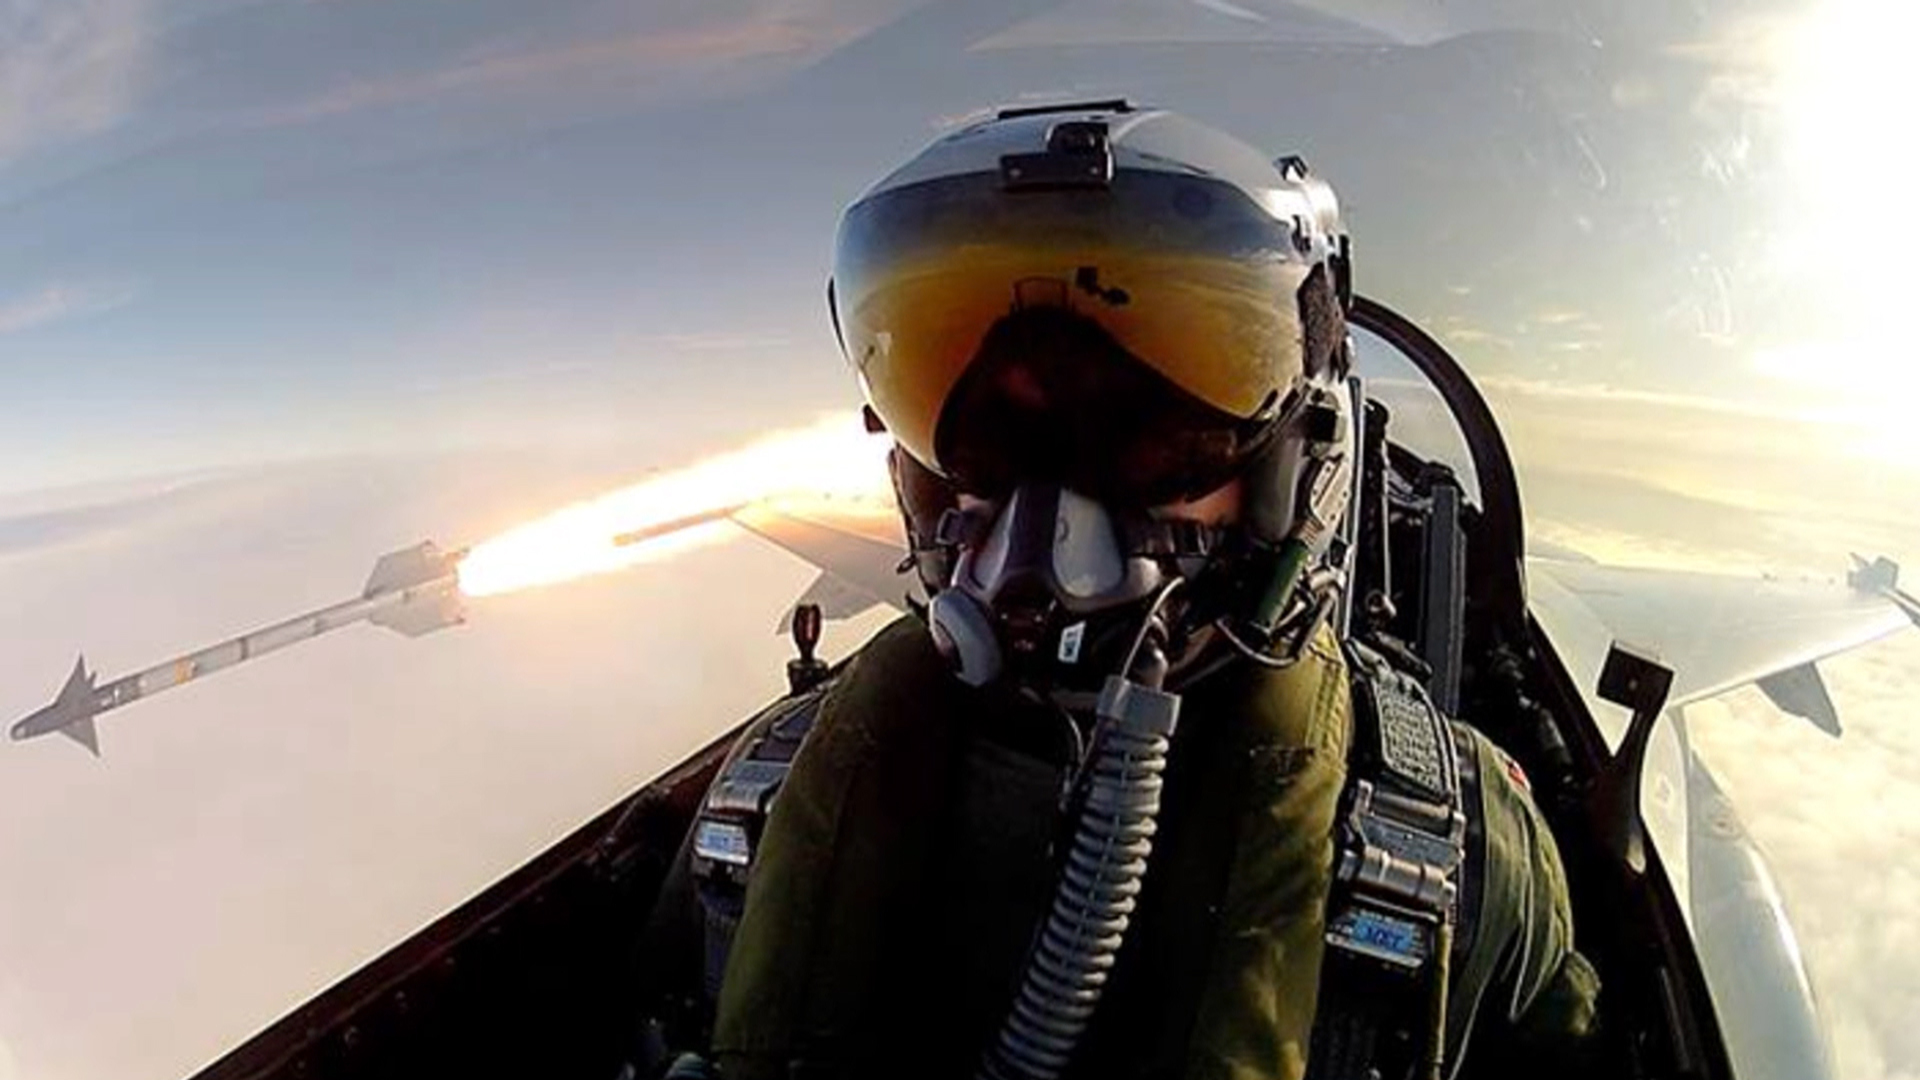 Fighter Pilot Posts Selfie While Firing Missile